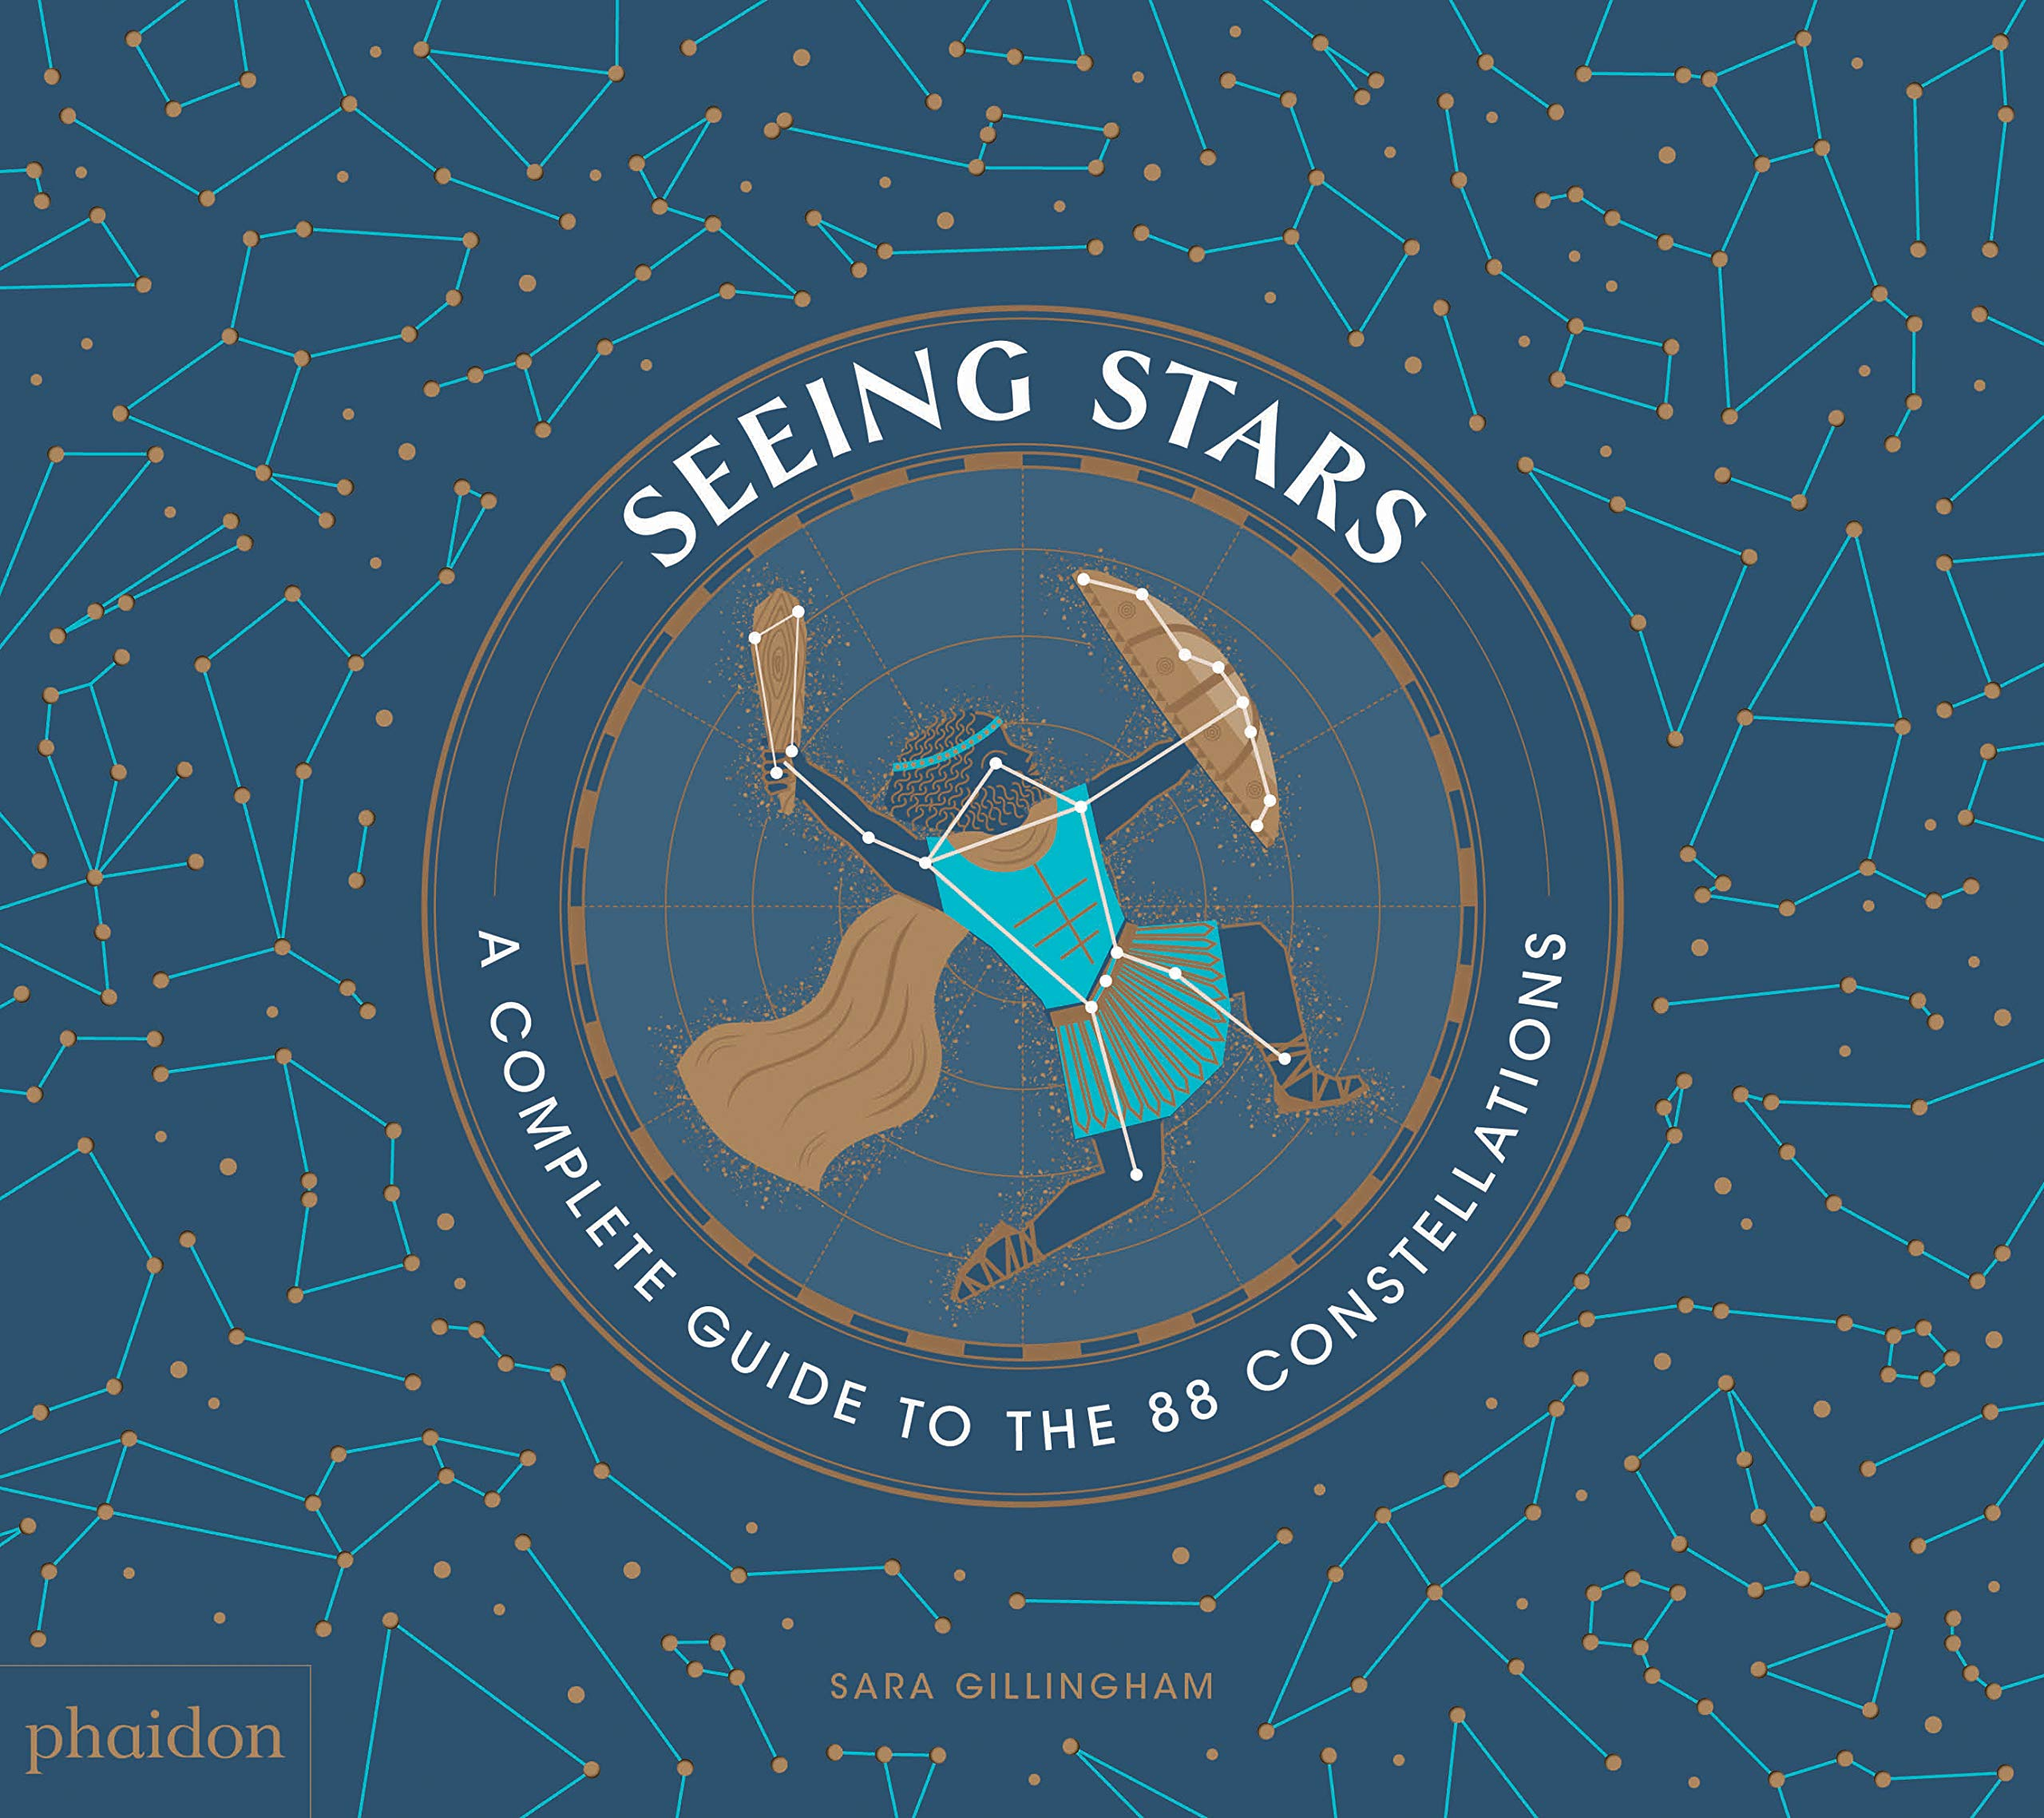 Seeing Stars: A Complete Guide to the 88 Constellations by Phaidon Press